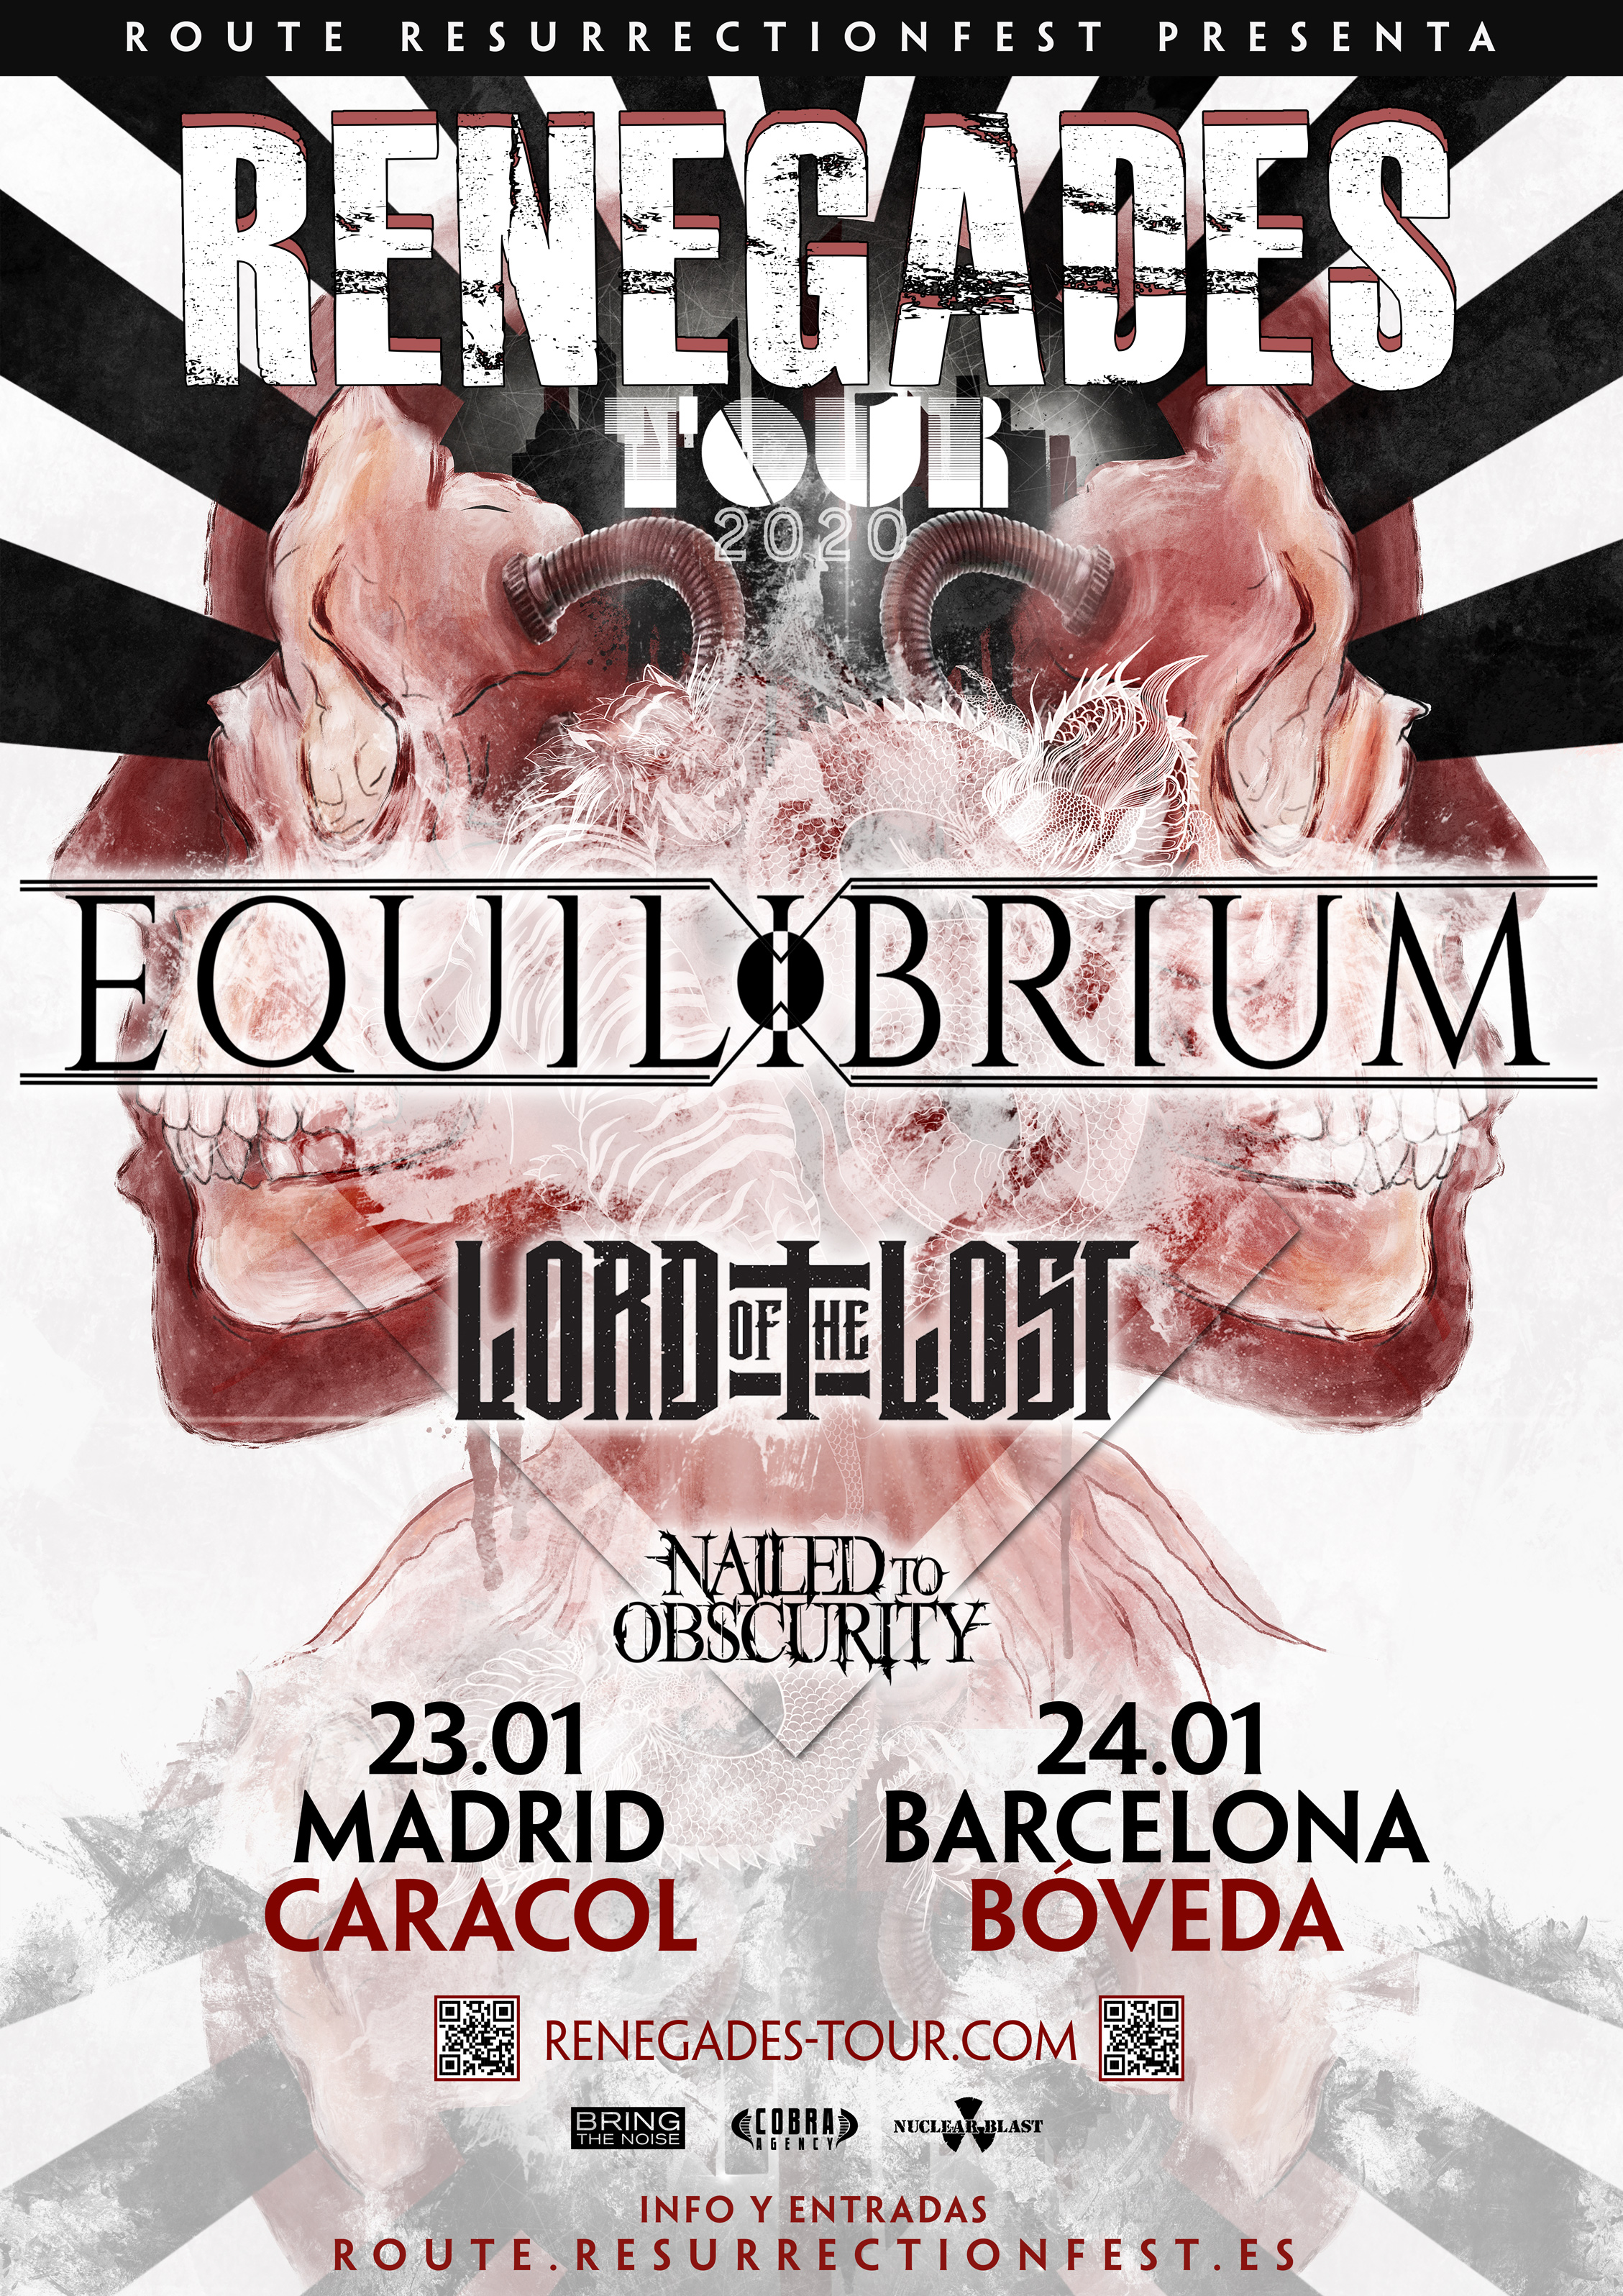 Route Resurrection 2020: Equilibrium (Madrid)